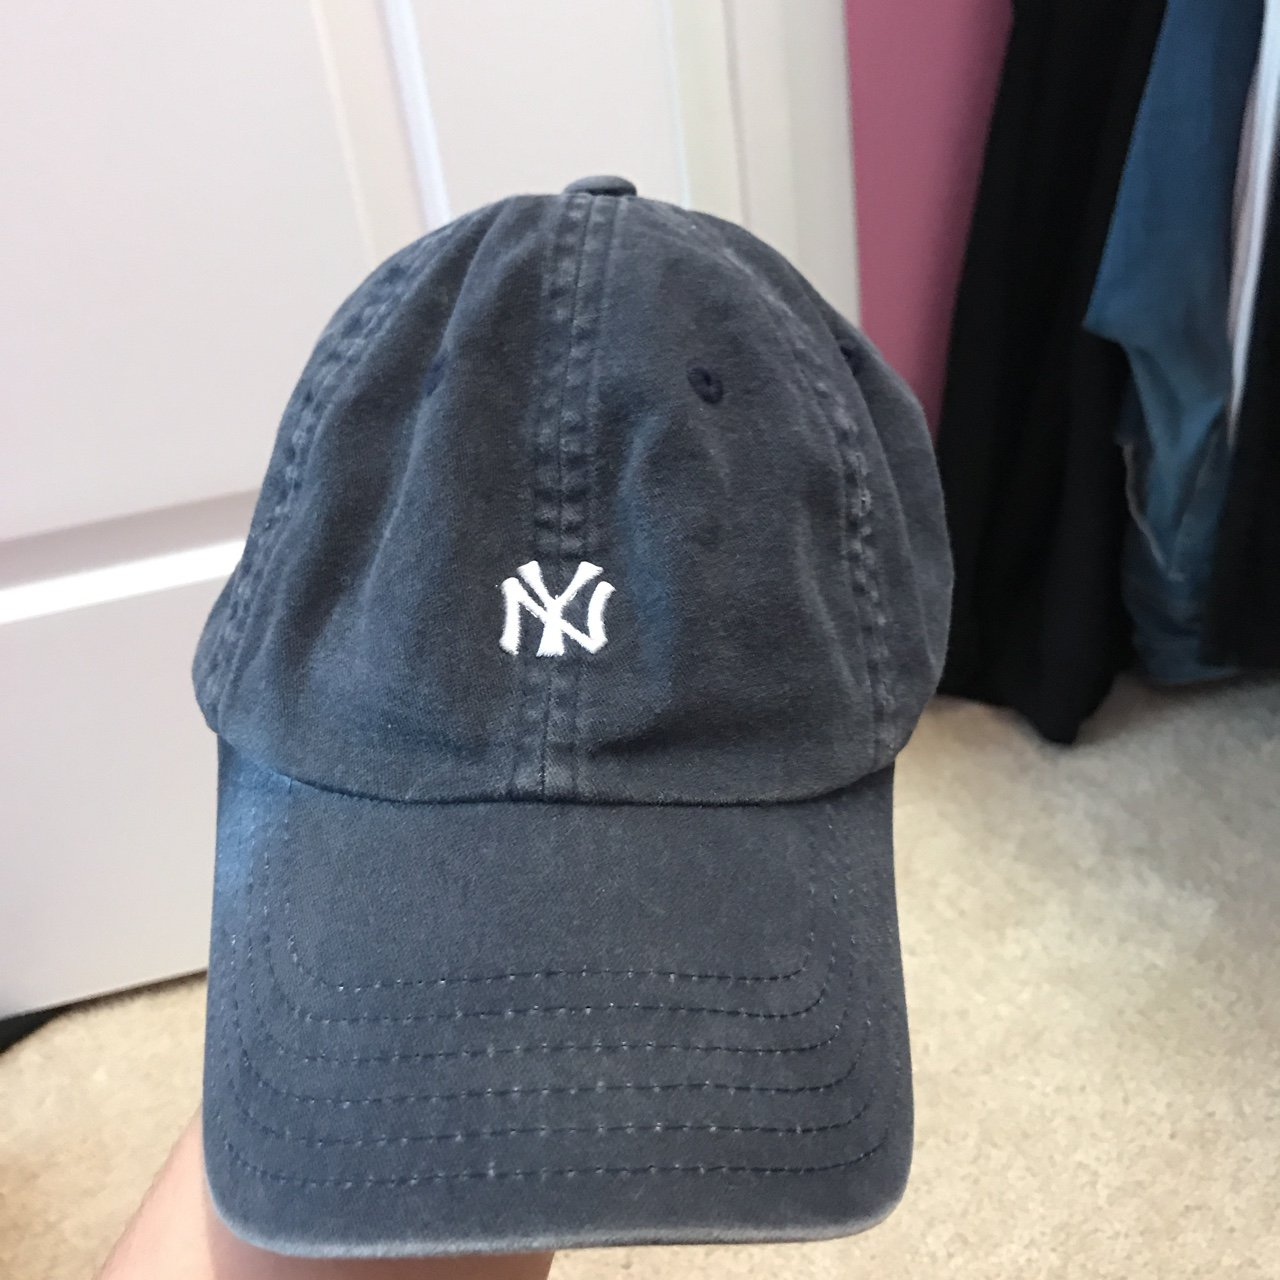 American Needle Distressed New York Yankees Hat. Never Worn. - Depop 2a25eb4a869